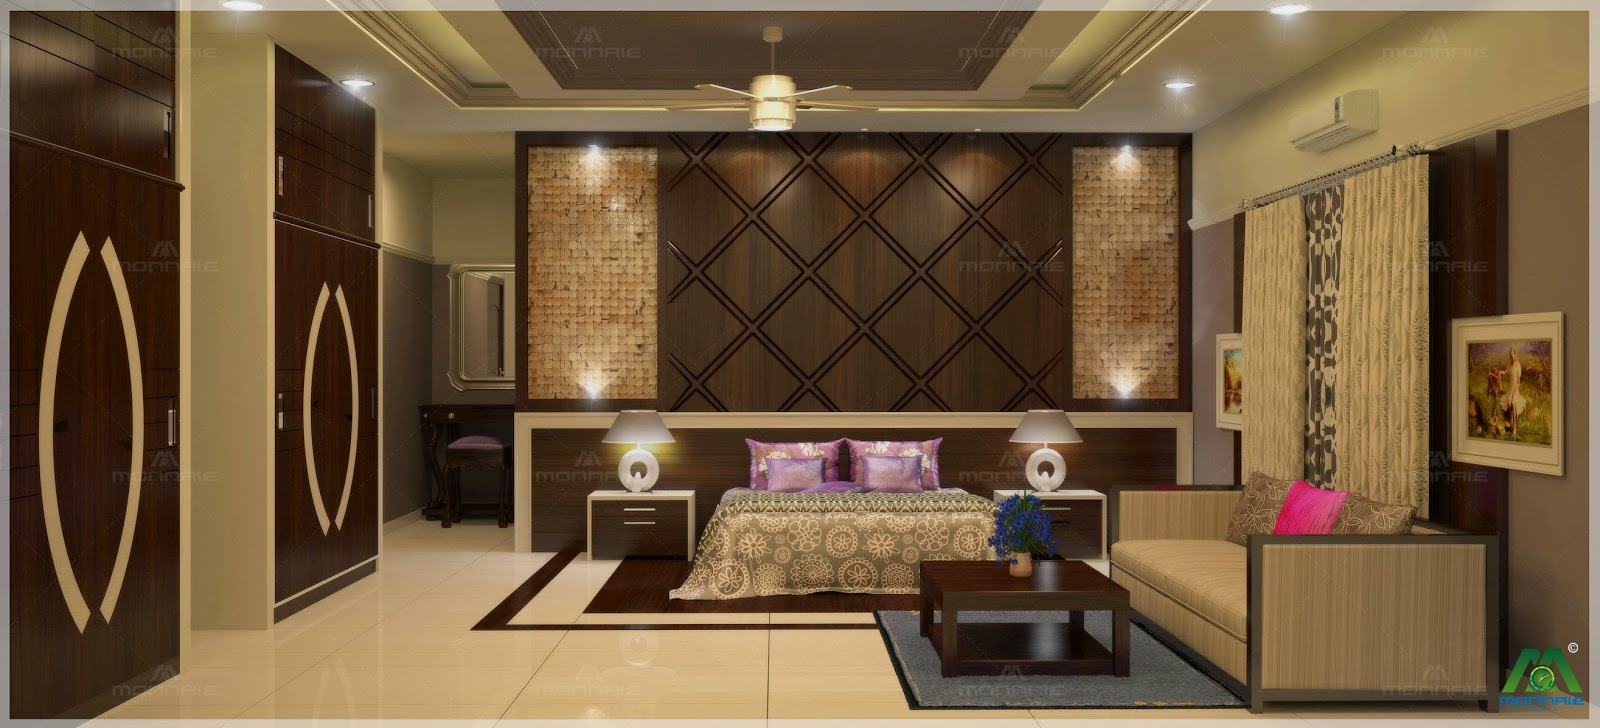 Monnaie Architects and Interiors: Best 10 Bedroom interior Designs ...